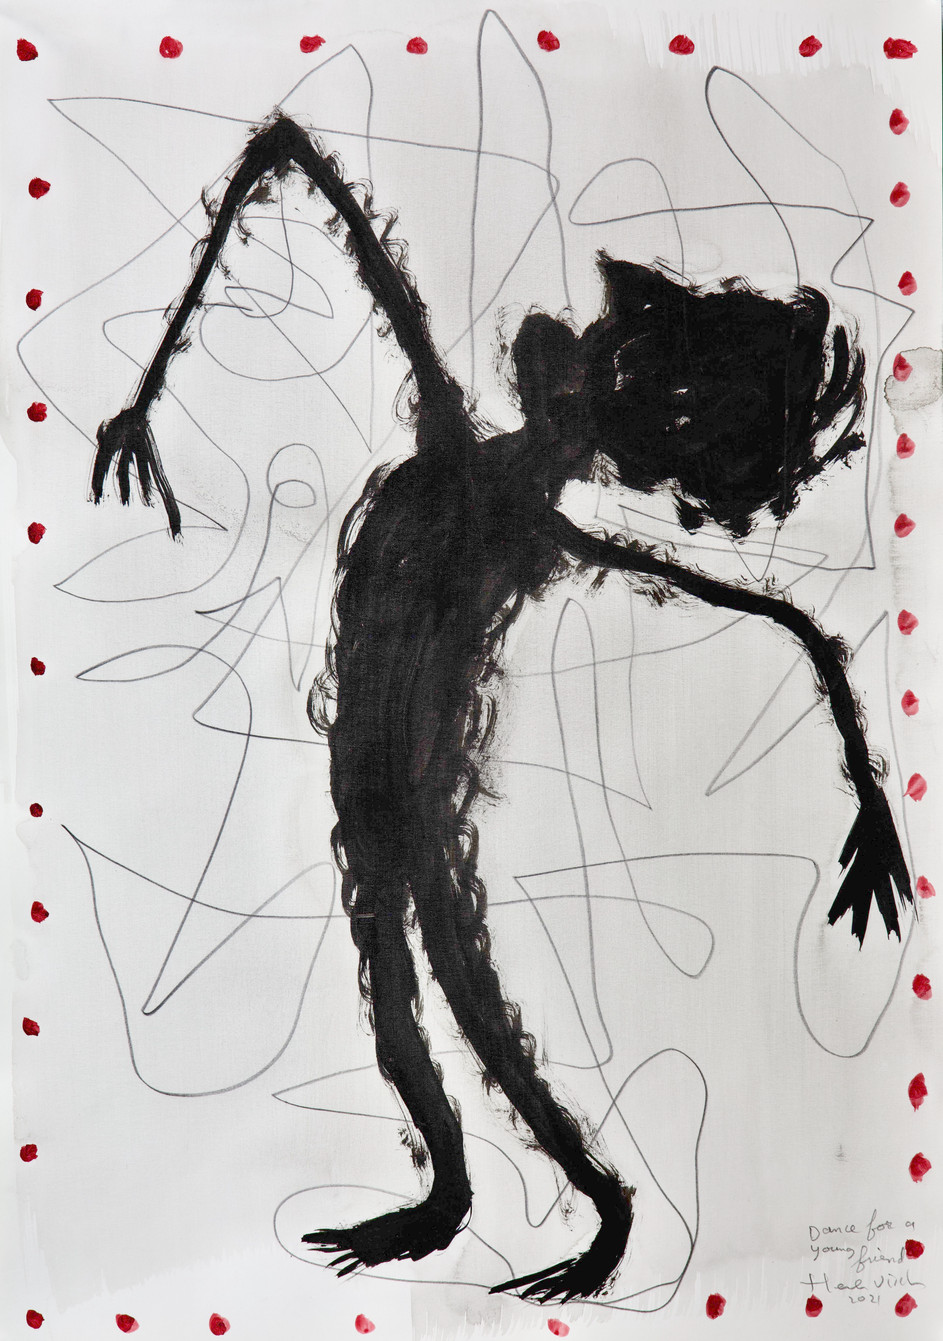 HENK VISCH Dance for a young friend, 2021 watercolor and pencil on paper 42 x 29,7 cm